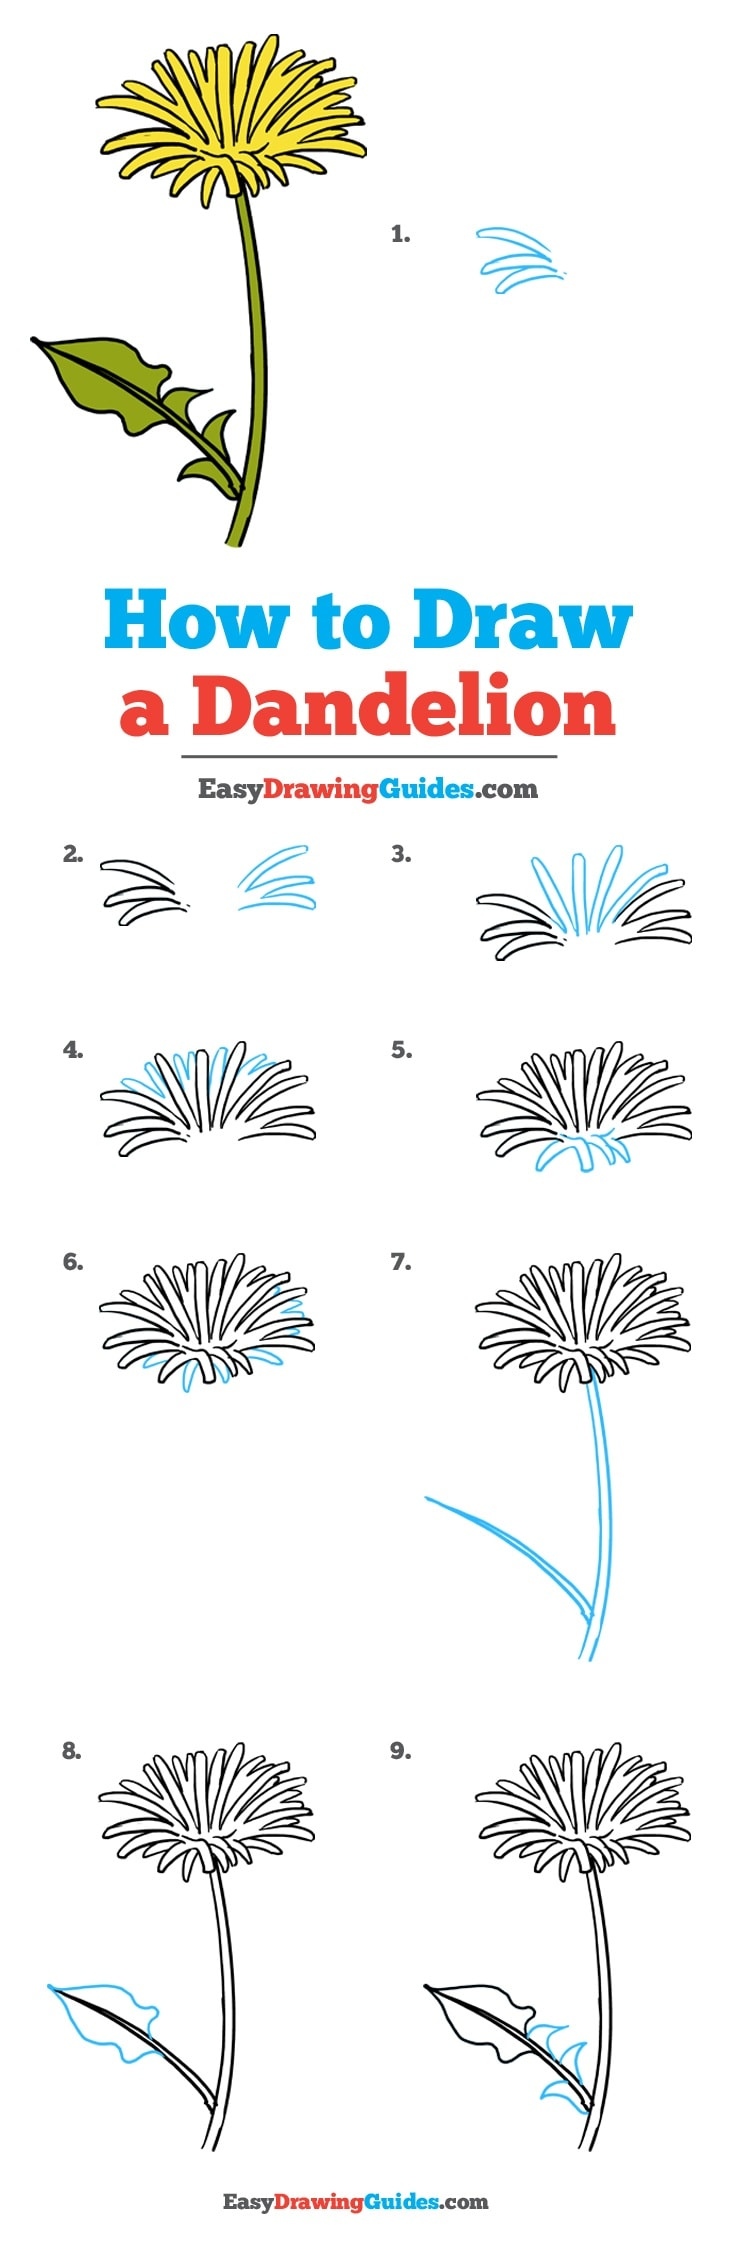 clipart free download Dandelions drawing step by. How to draw a